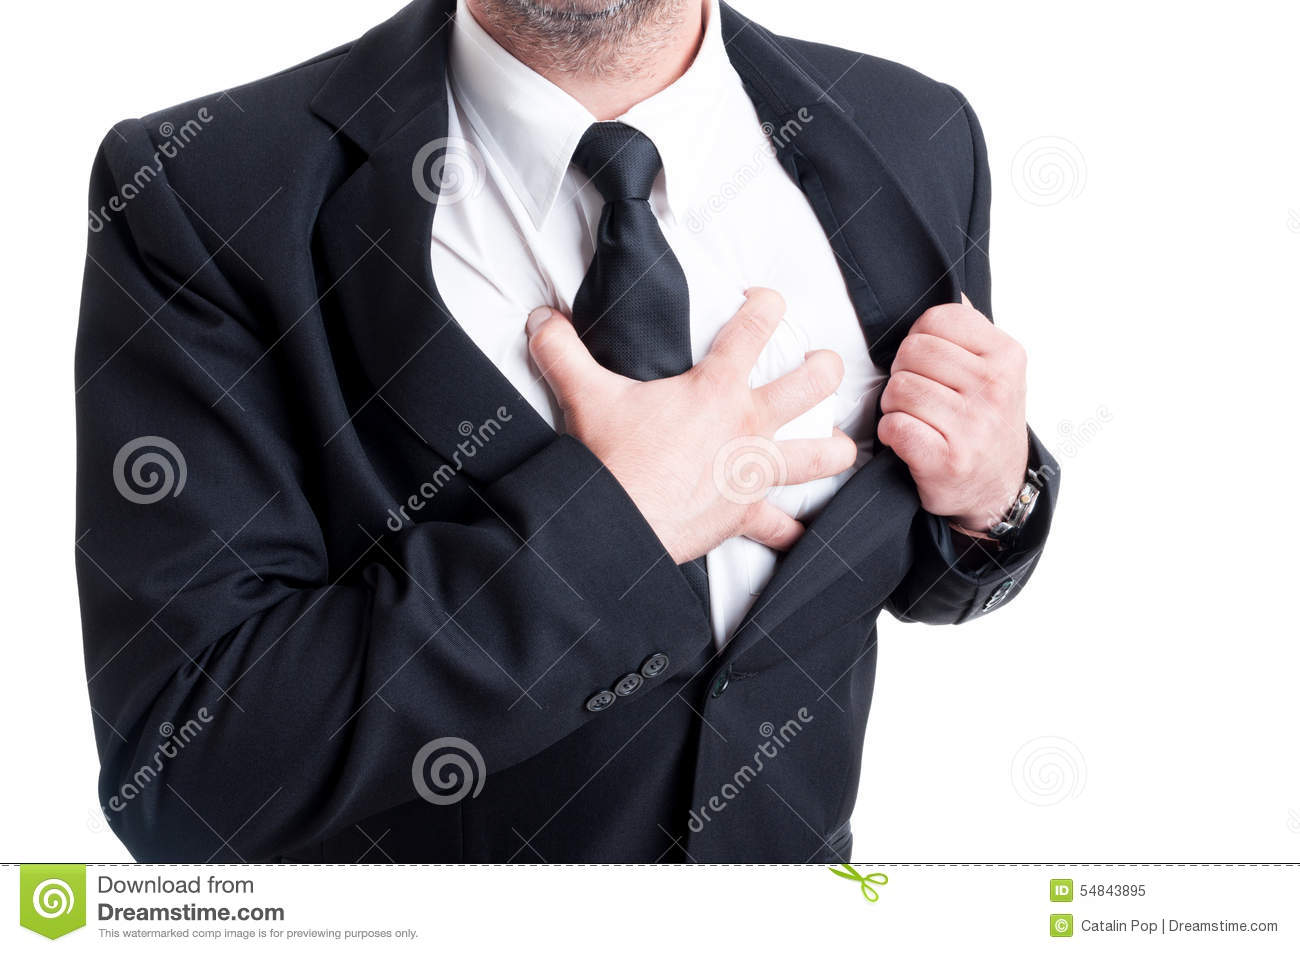 Consider, that breast pain in men already